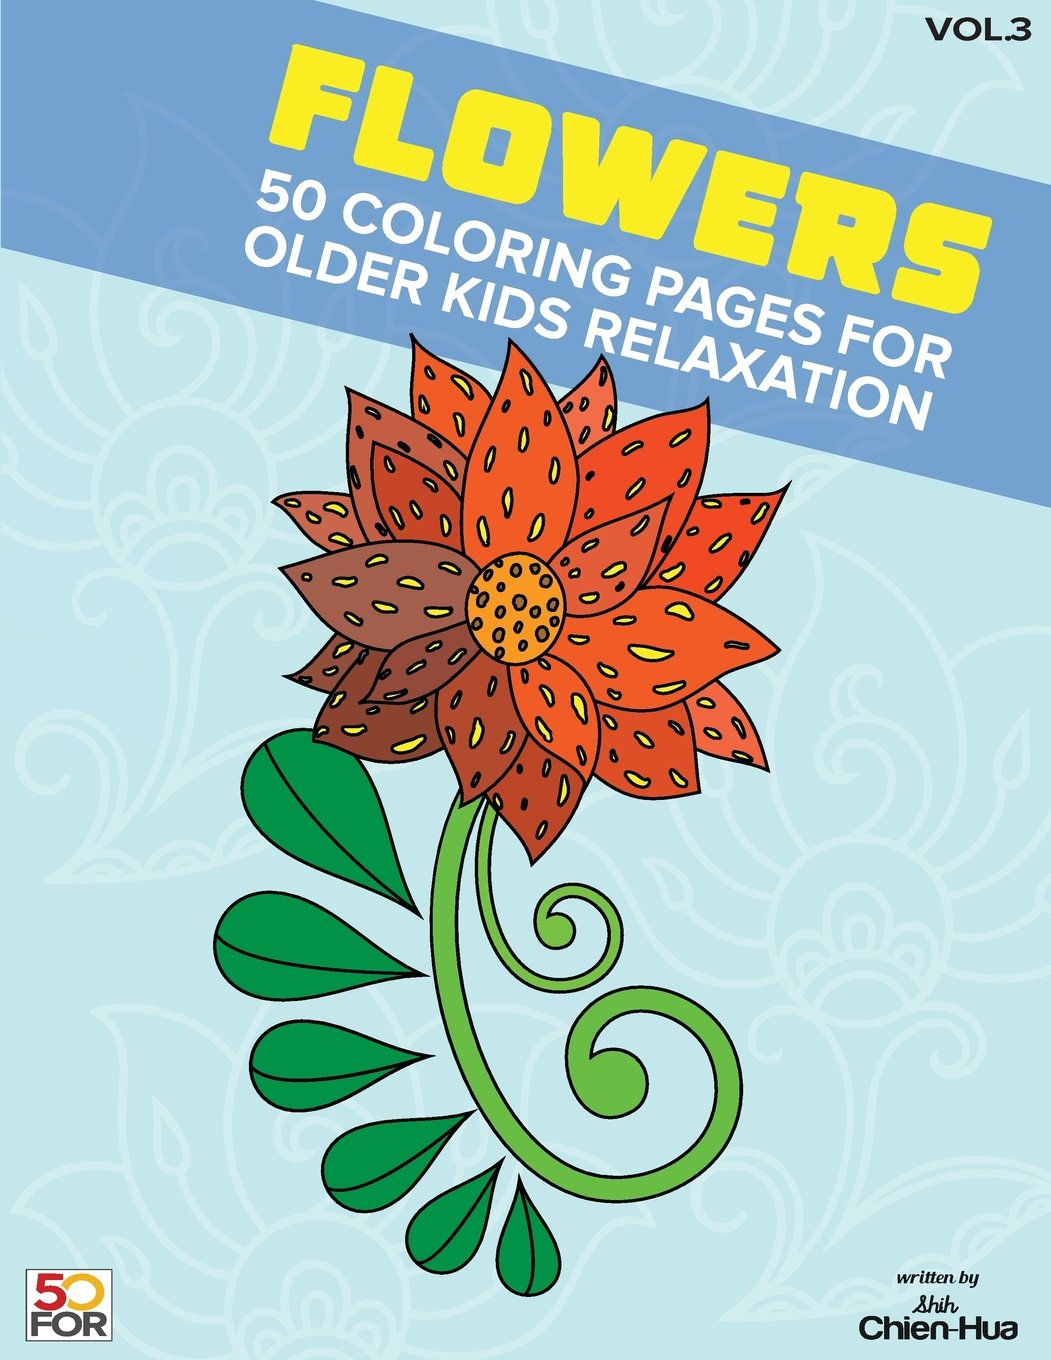 Flowers 50 Coloring Pages for Older Kids Relaxation Vol.3: Amazon.in ...